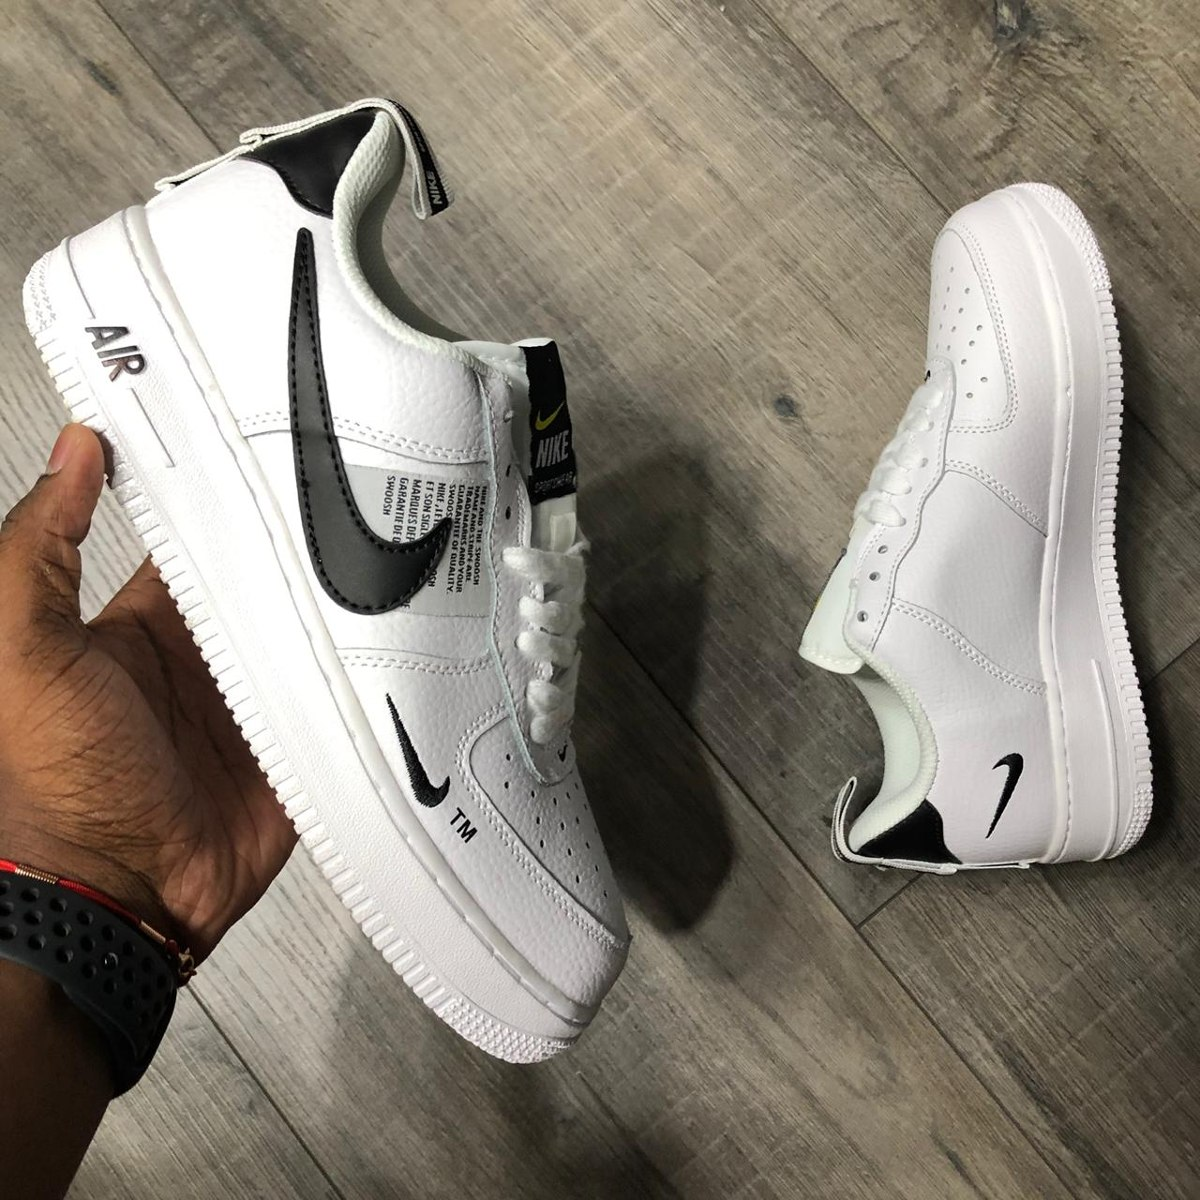 Exclusivo Nike Air Force 1 Low Lv8 Utility - Hombre 2019